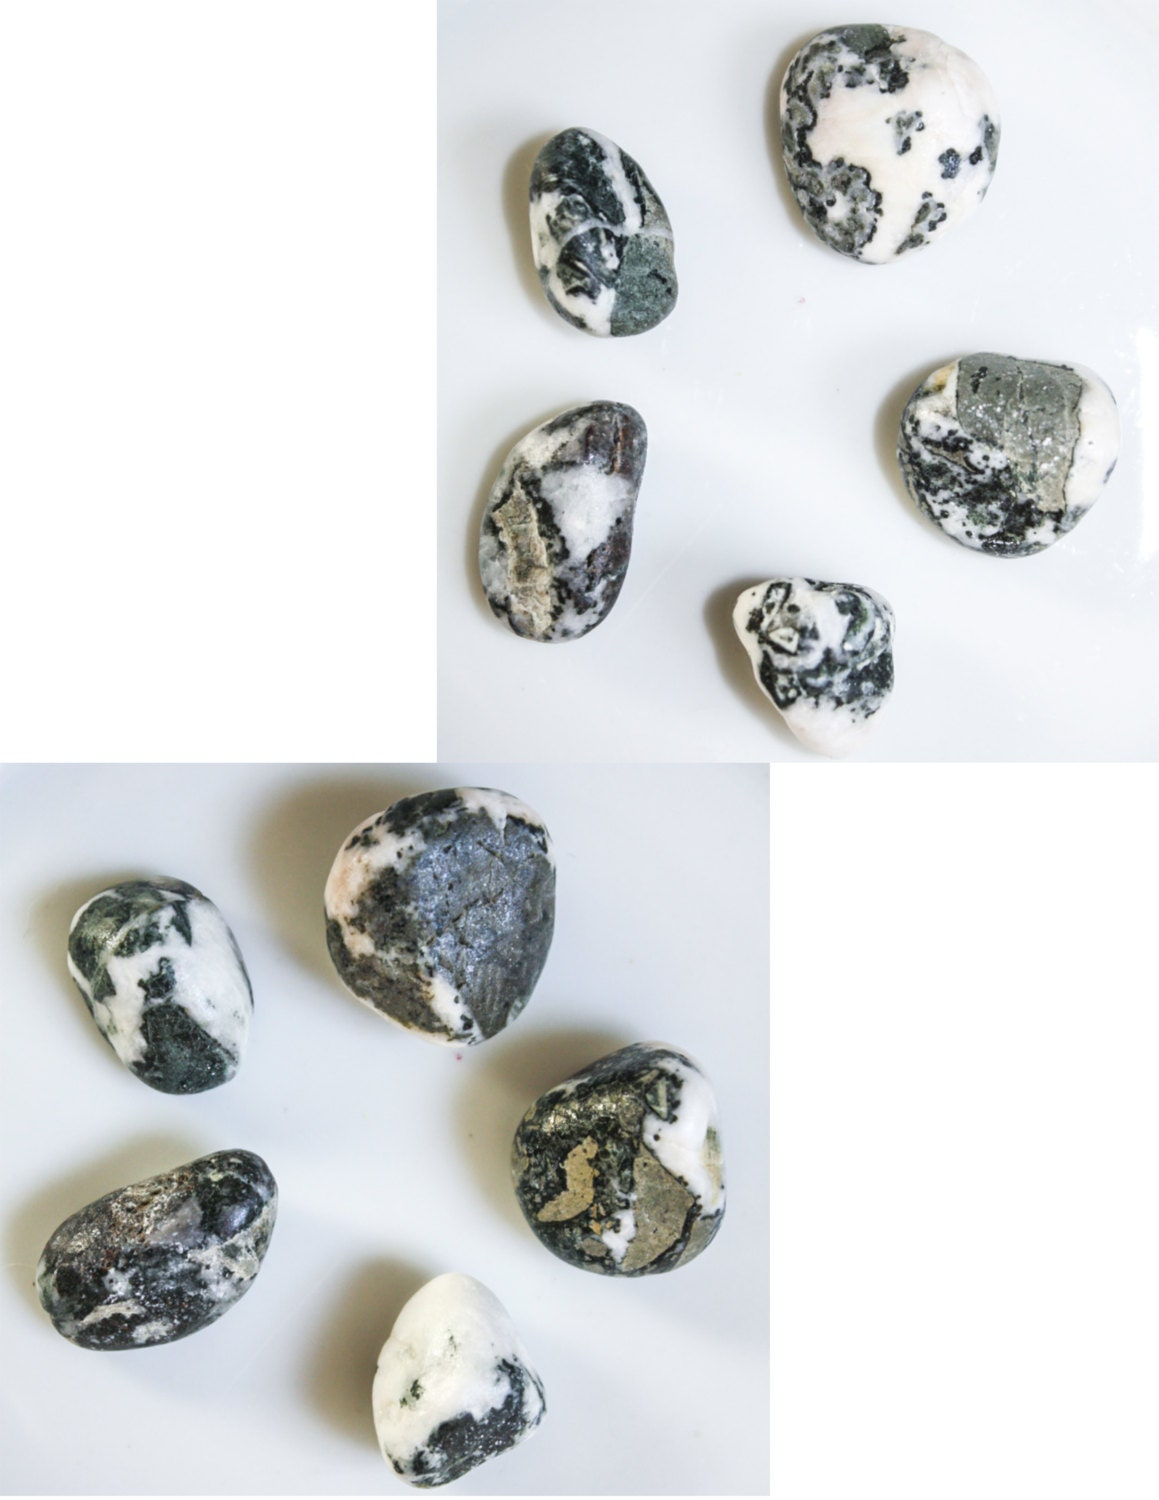 Dallasite rocks 10 small size stones mineral for Handley rock jewelry supply vancouver wa